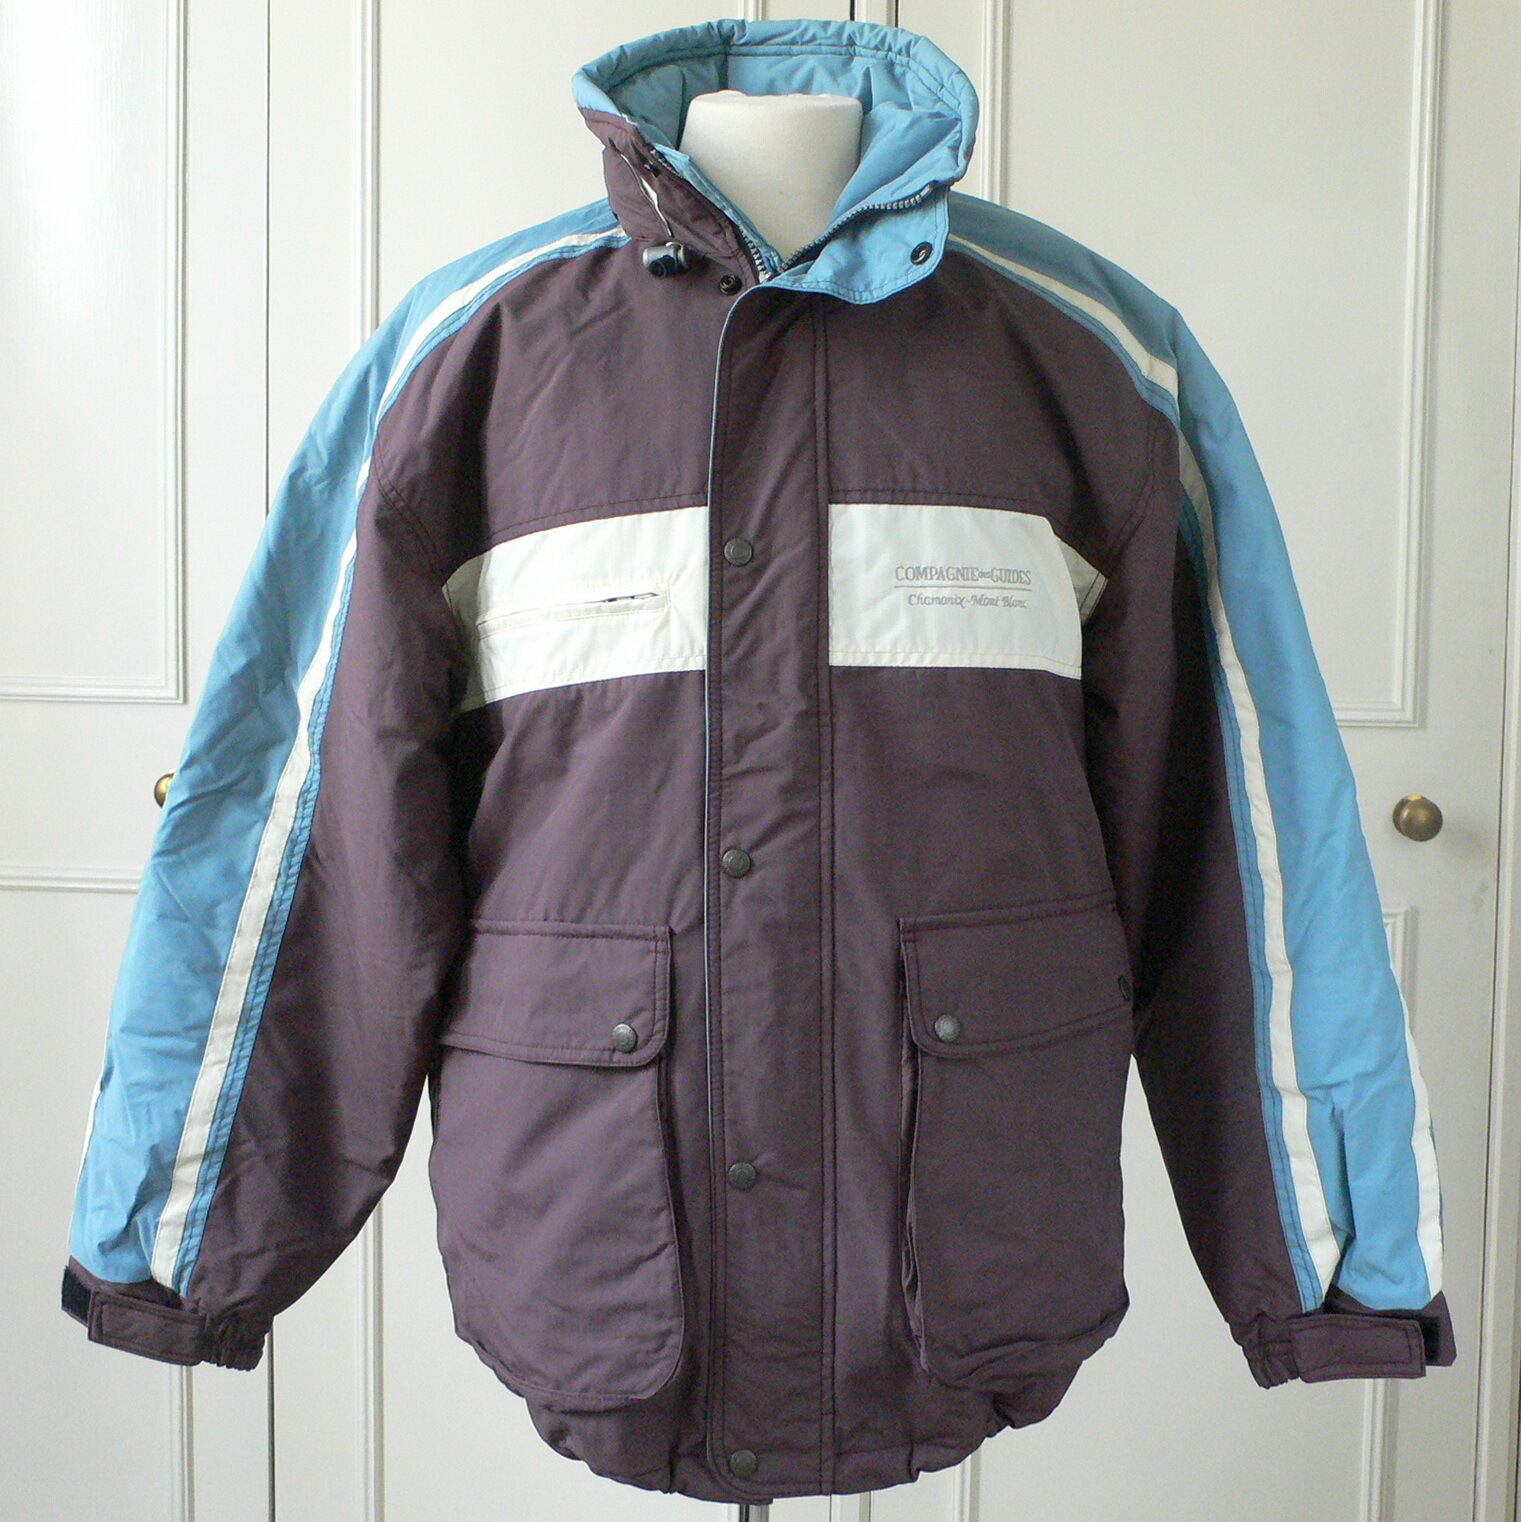 RETRO SKI JACKET ADVANCED COMPAGNIE DES GUIDES CHAMONIX MONT-Weiß NEW